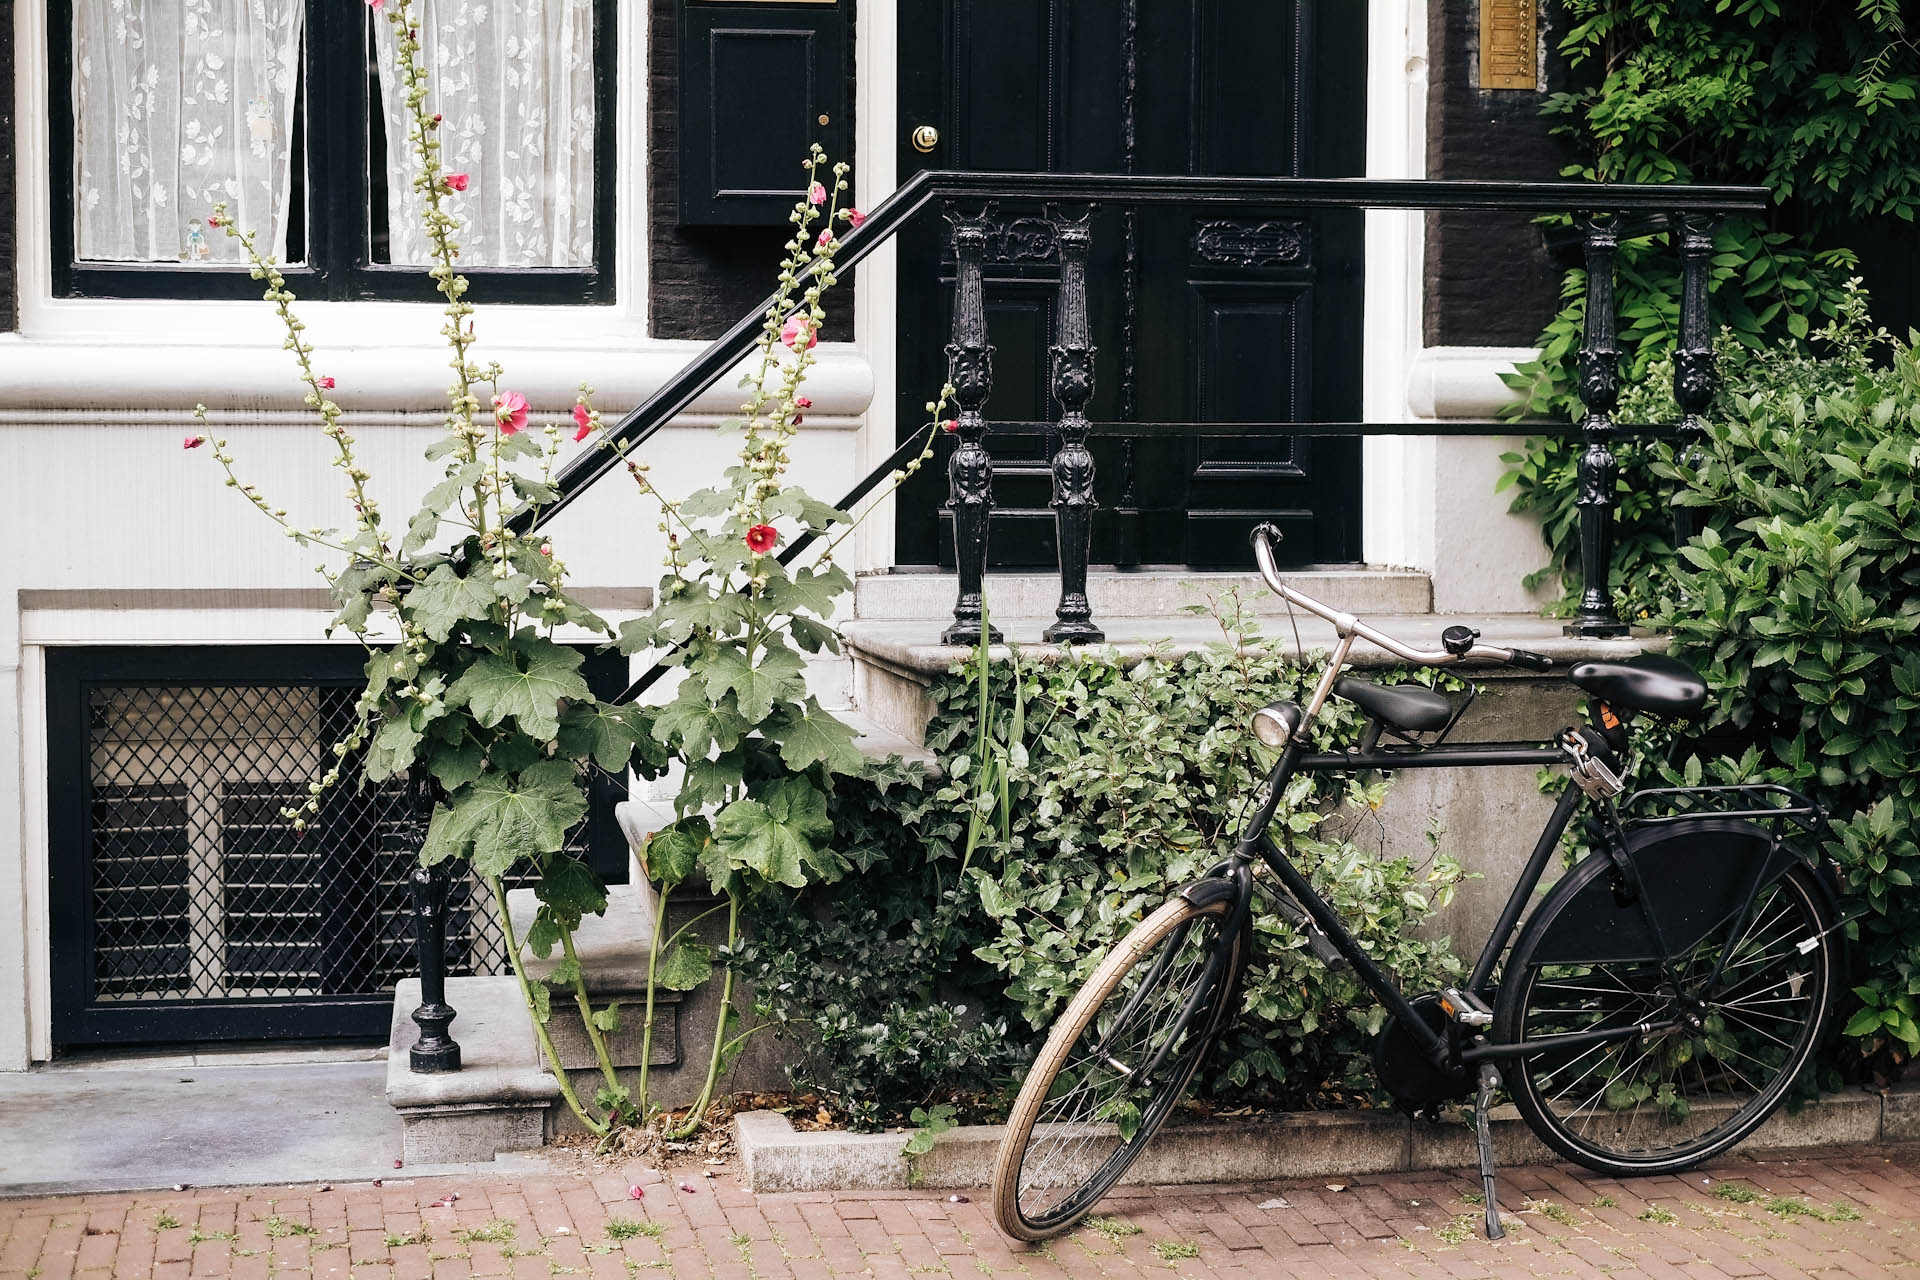 Amsterdam, In Bloom